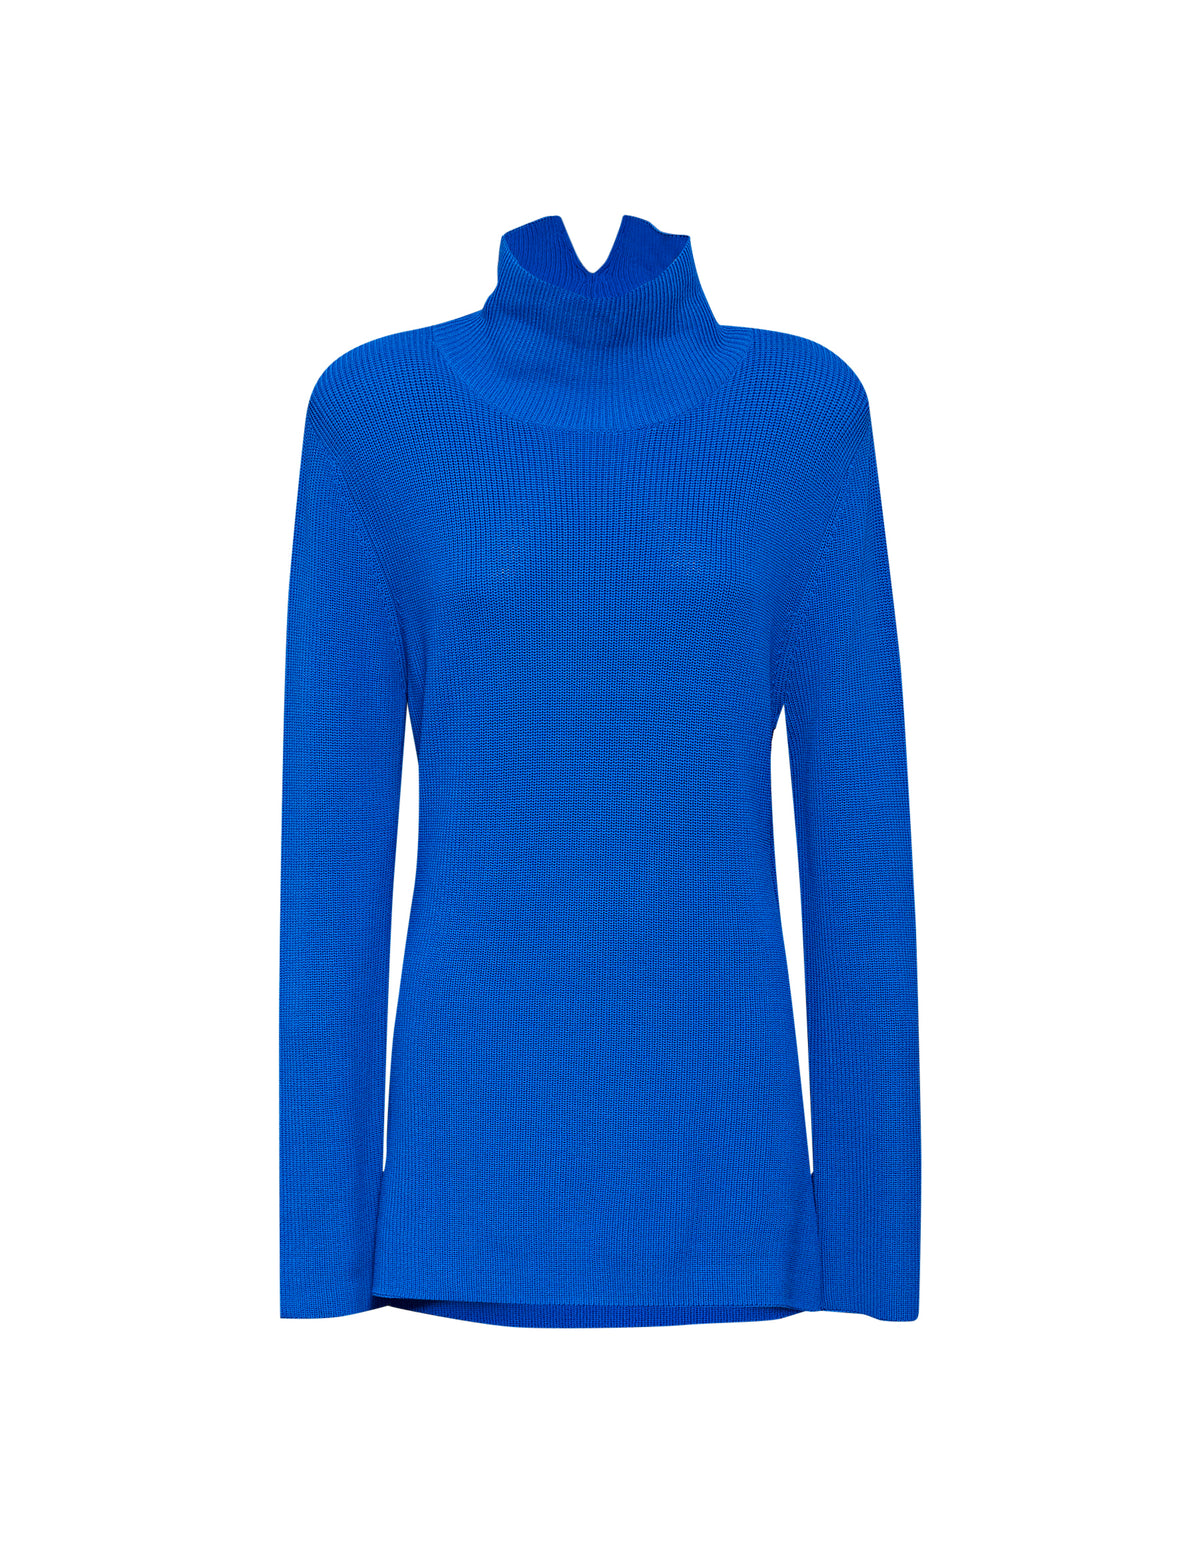 ROBBIE KNIT TOP | BRIGHT BLUE